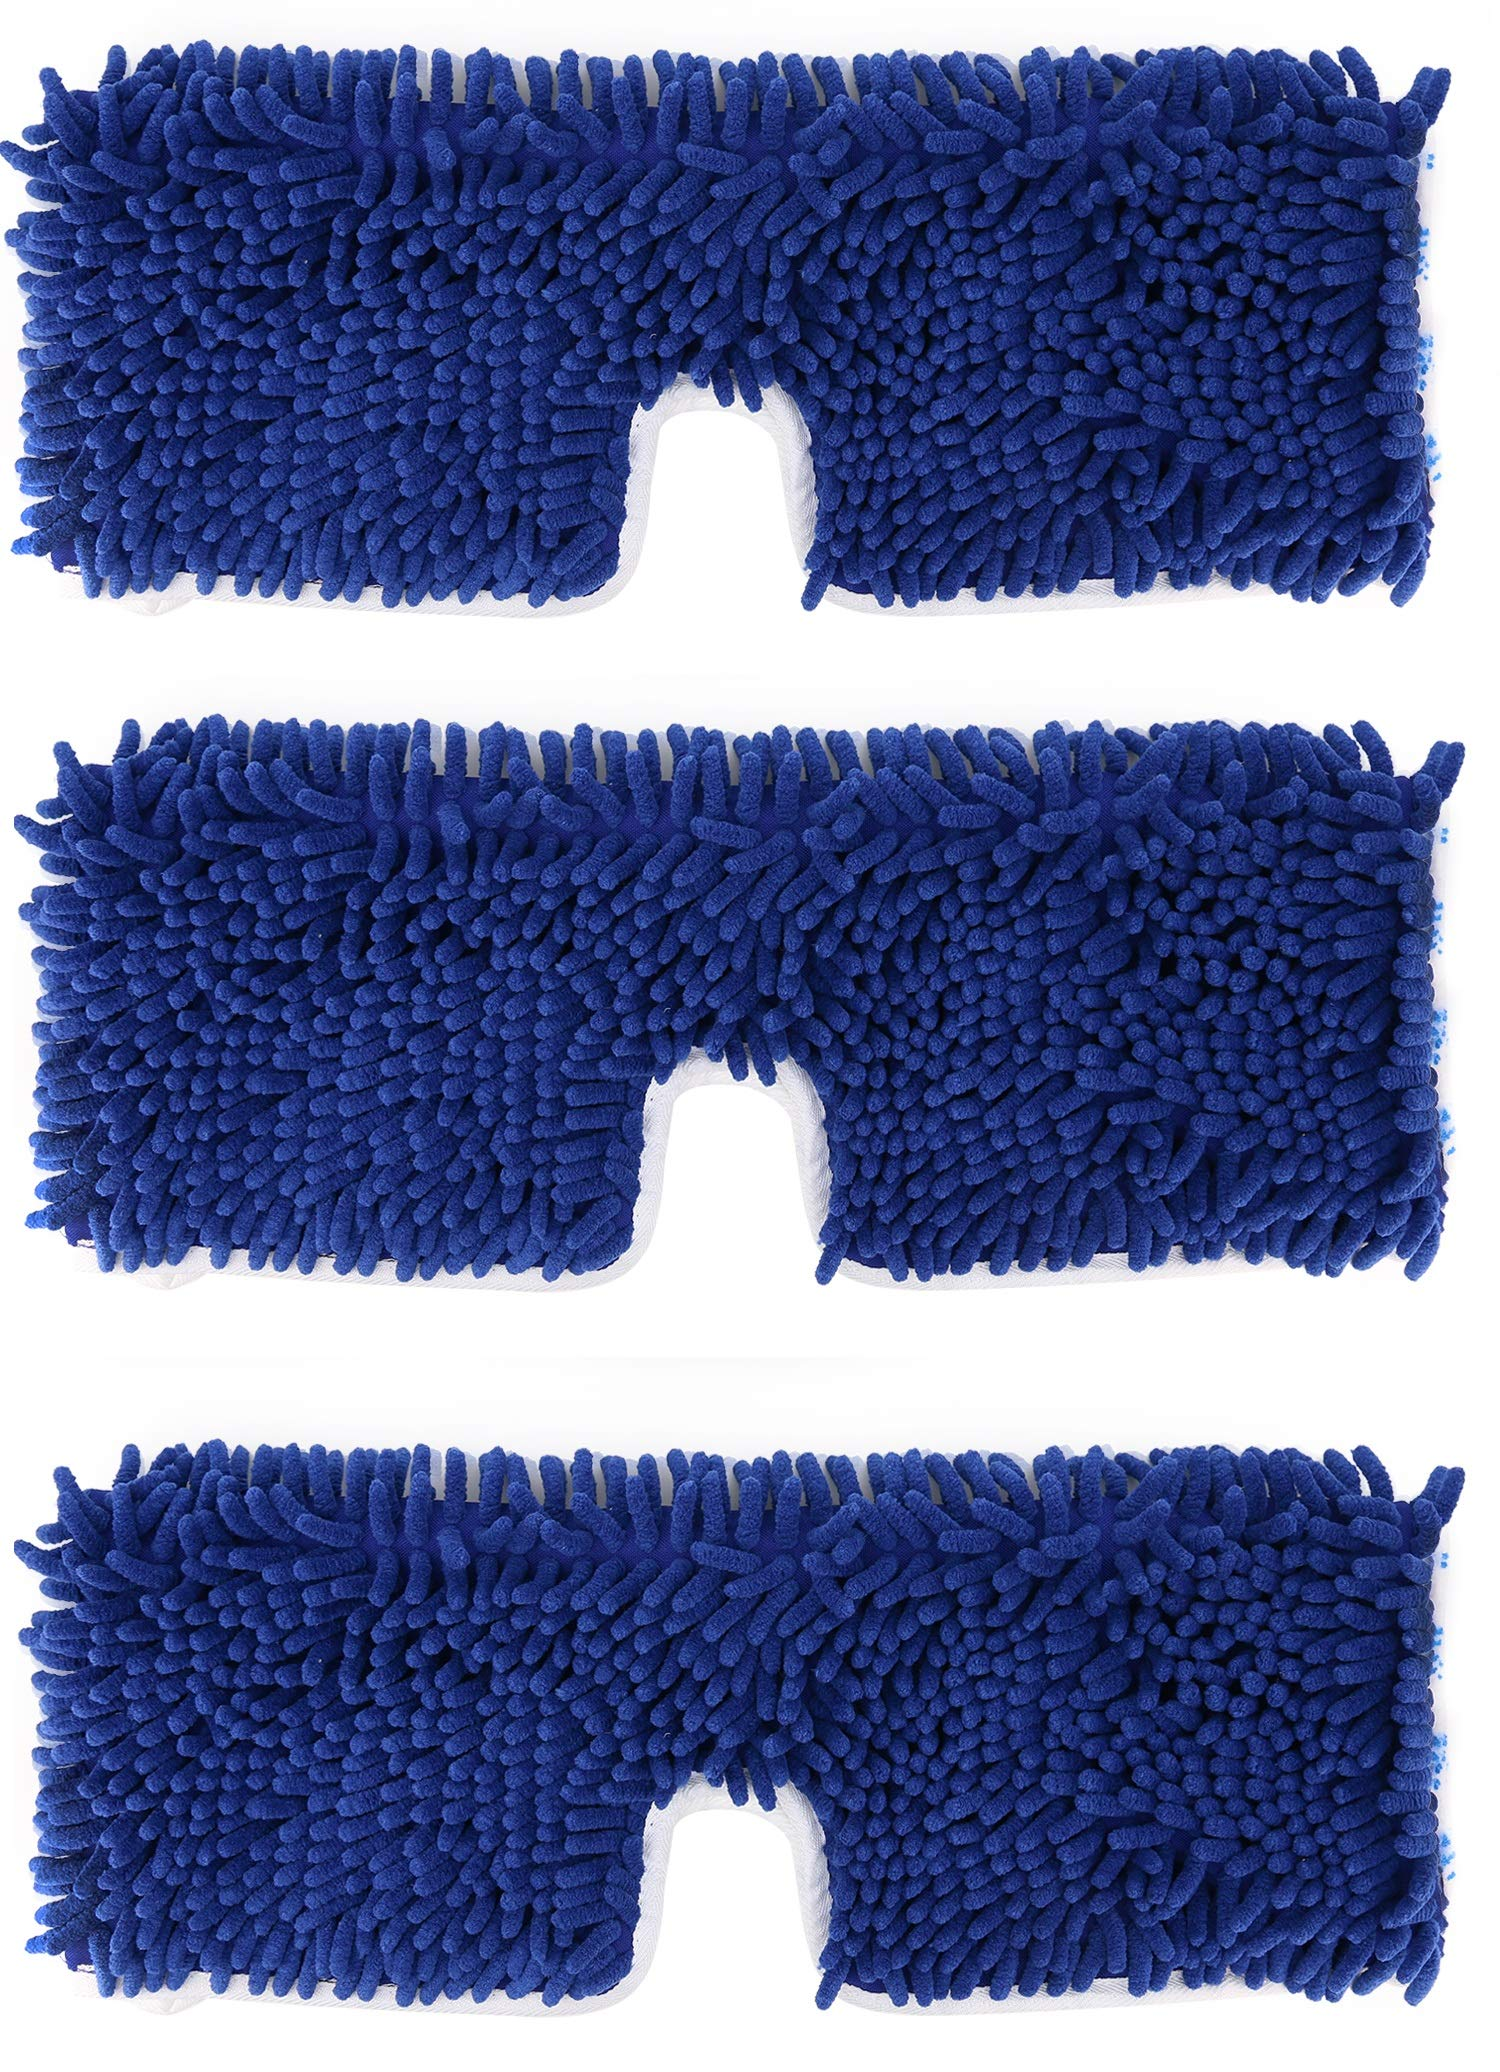 Extra Soft Dual- Action Replacement for O- Cedar Flip Mops, Long Lasting - Machine Washable, Versatile (Pack of 3, 18'')